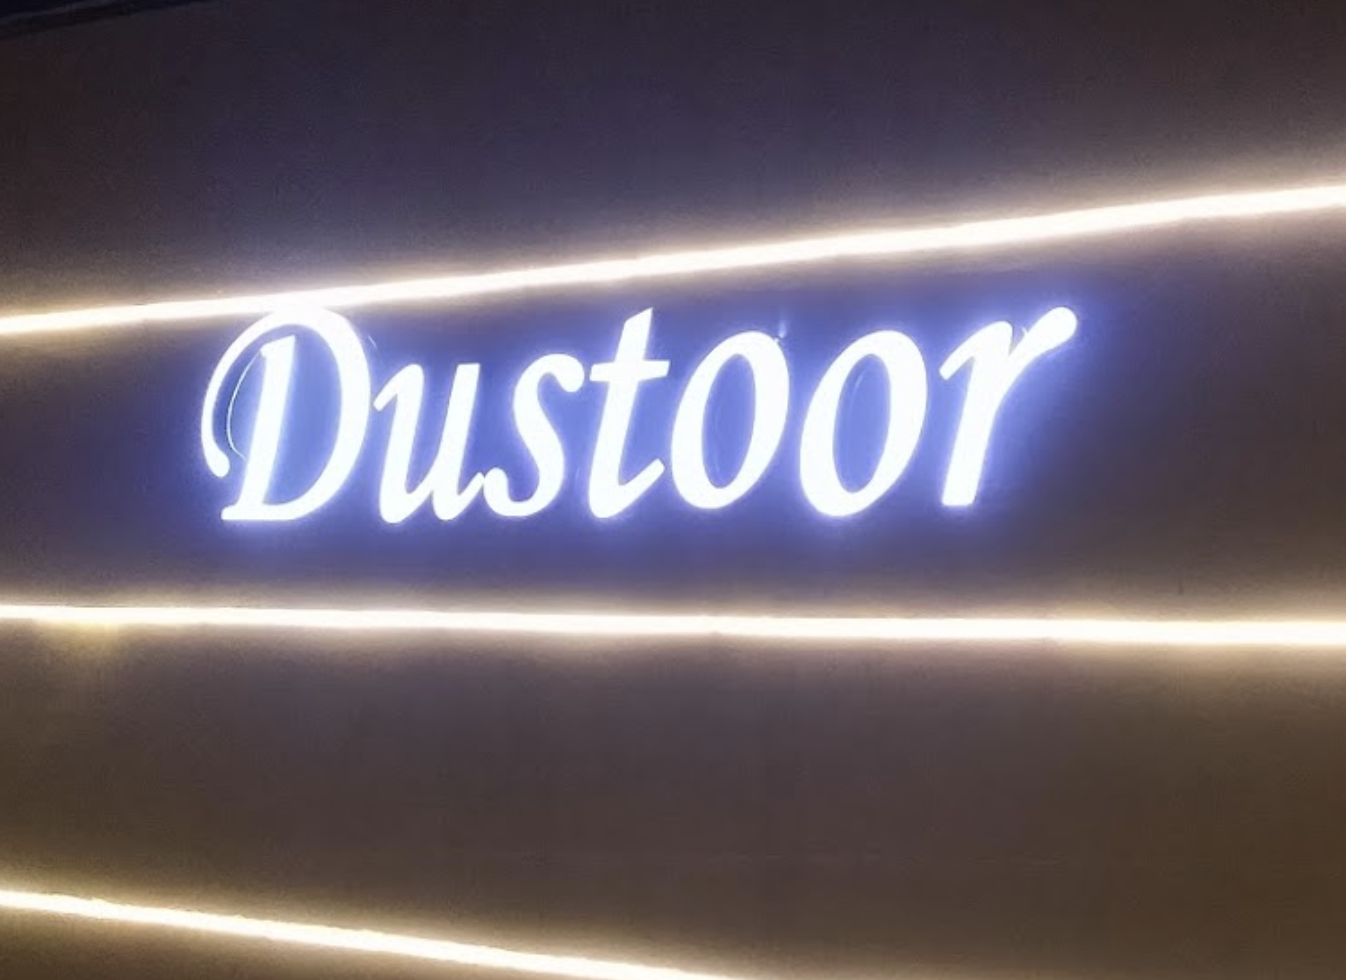 Dustoor Events